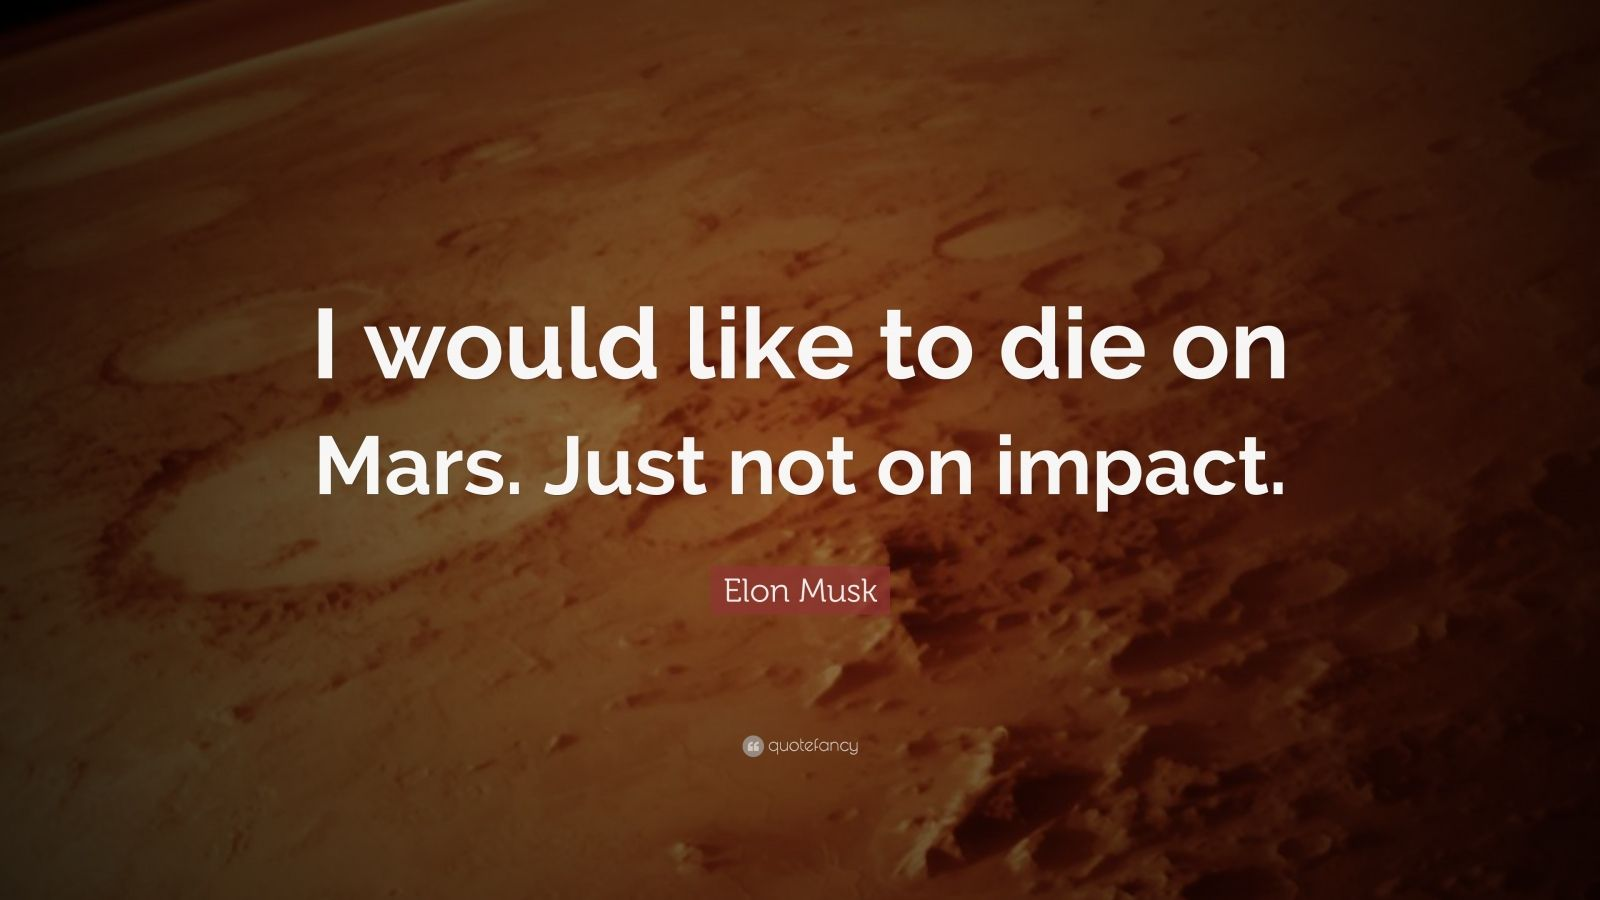 Elon Musk Quotes Wallpapers Elon Musk Quote I Would Like To Die On Mars Just Not On